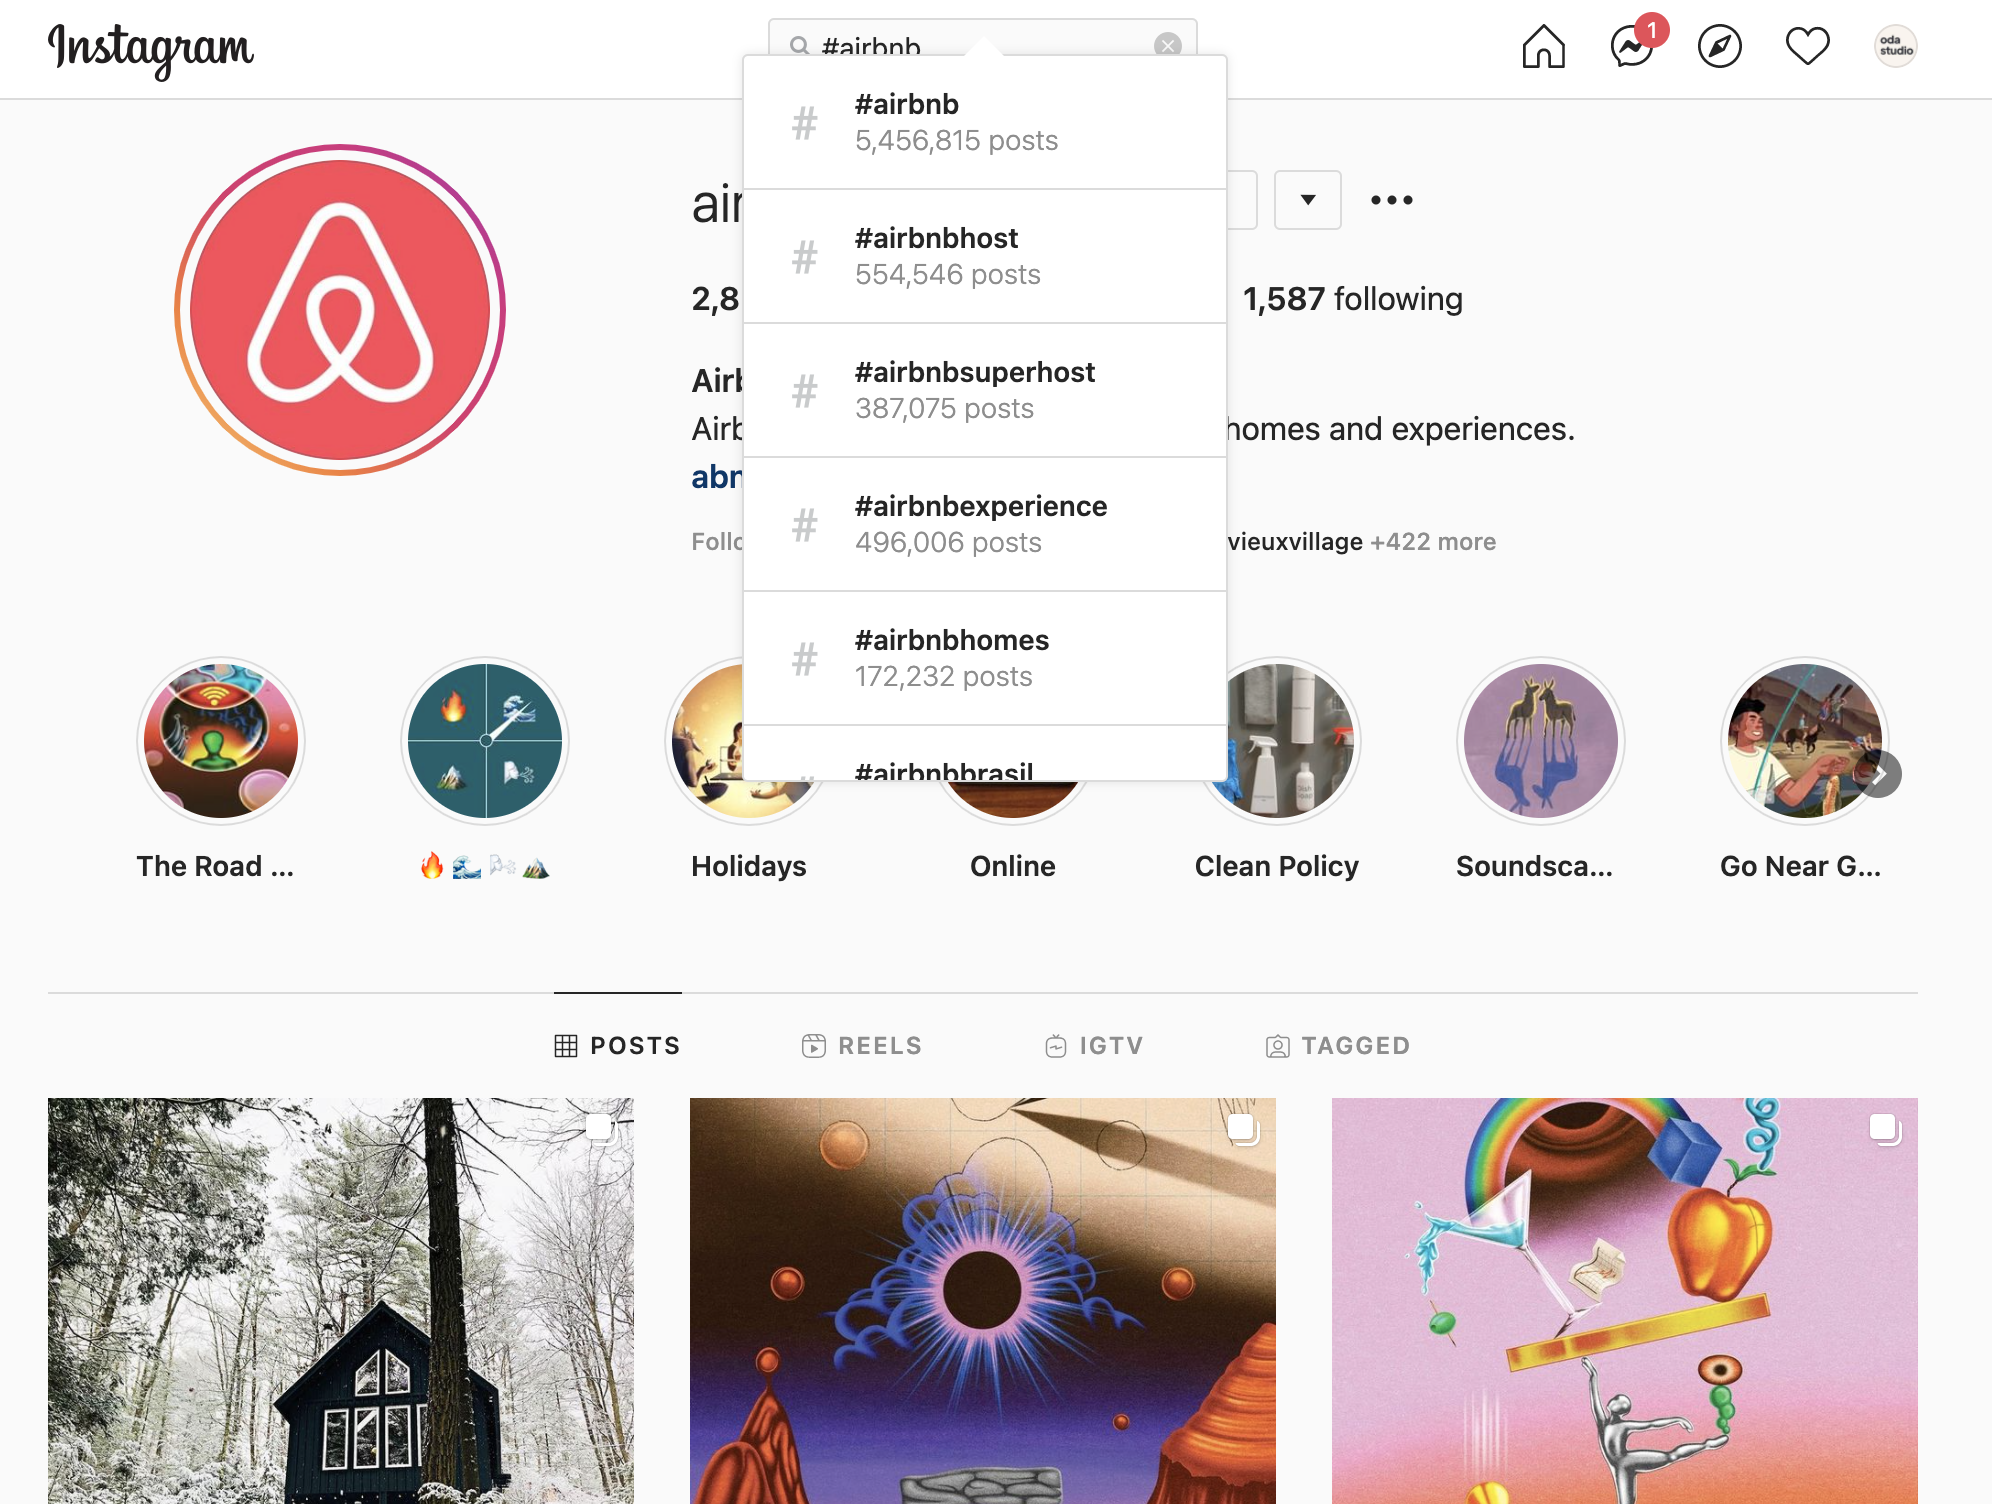 screenshot from instagram search to show the most popular vacation rental hashtags such as #airbnb #airbnbhost #airbnbsuperhost